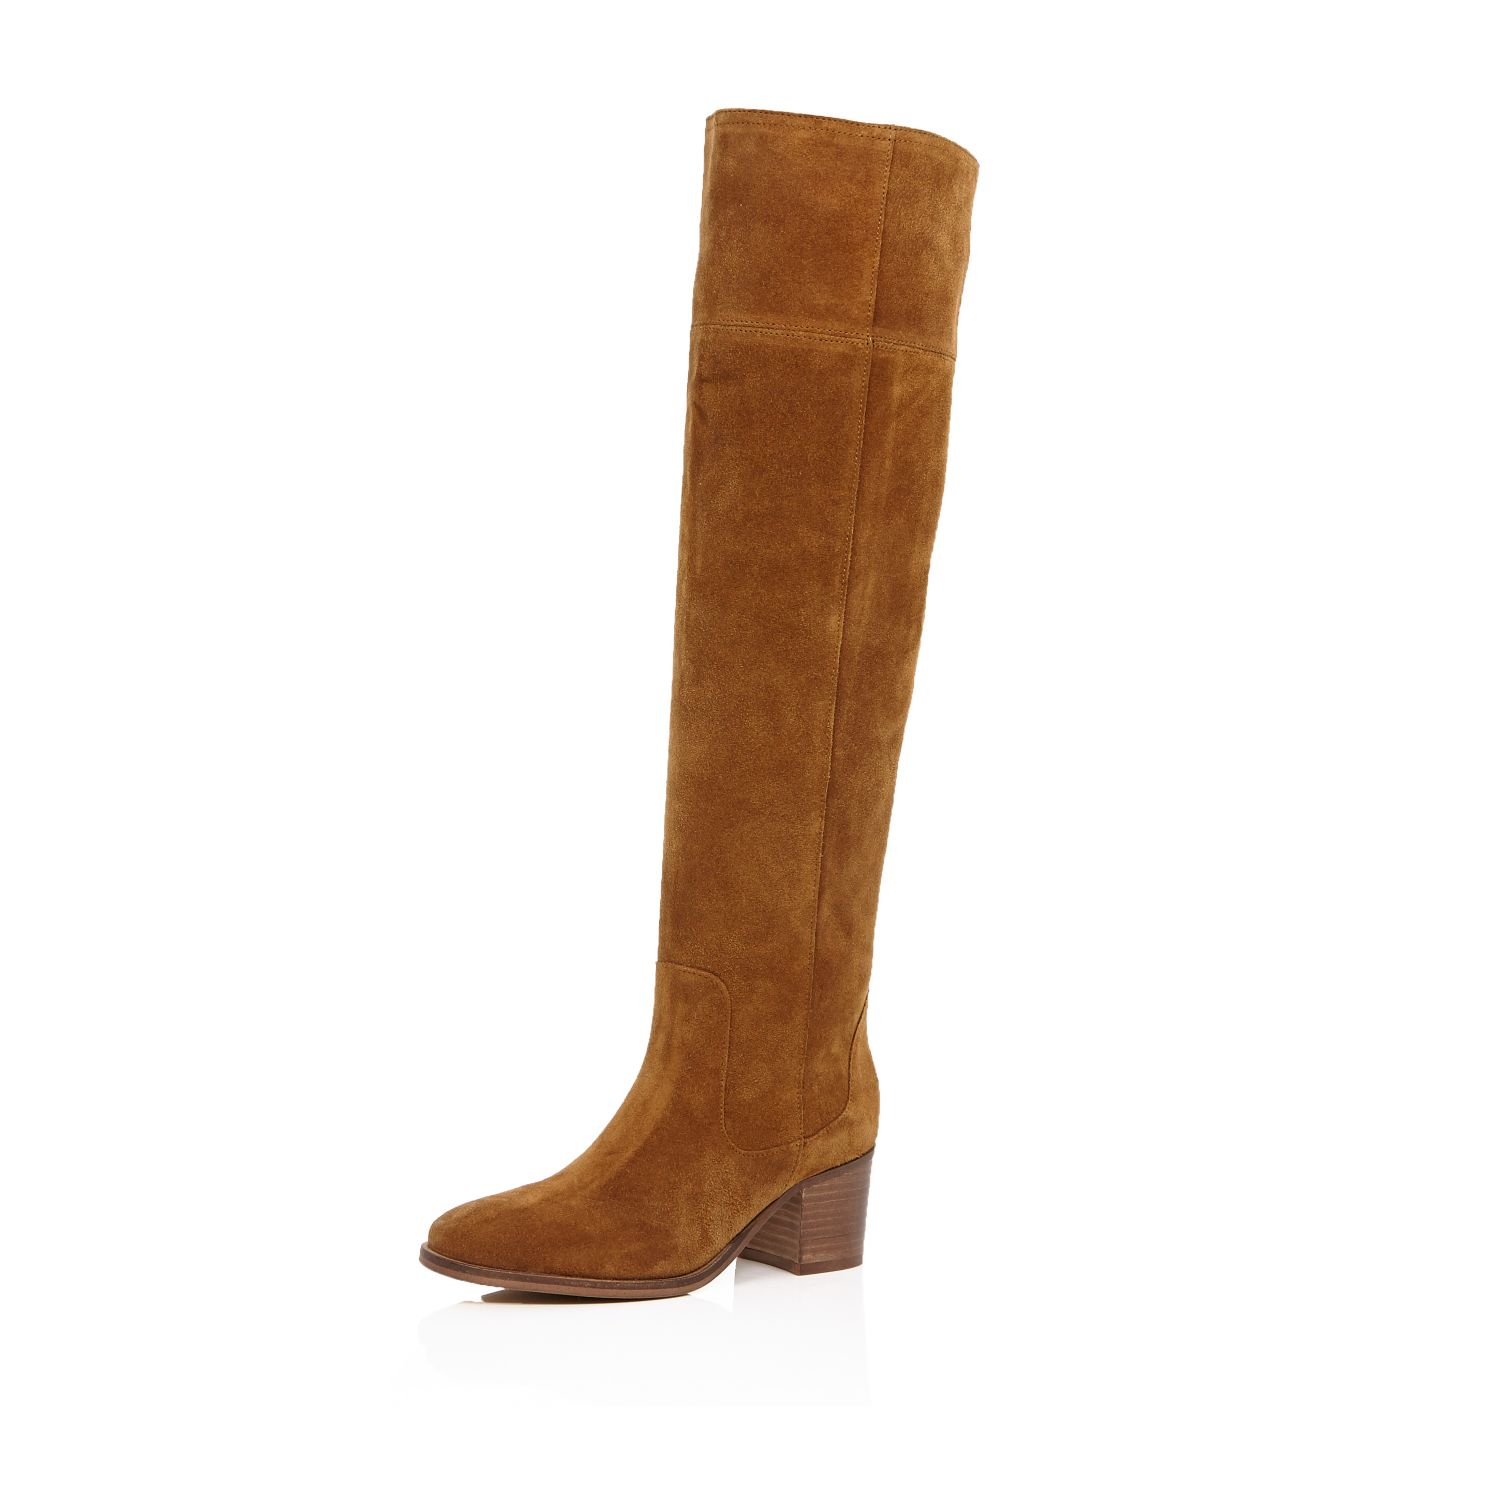 Find great deals on eBay for Brown Knee High Boots in Women's Shoes and Boots. Shop with confidence. Find great deals on eBay for Brown Knee High Boots in Women's Shoes and Boots. Stay warm and still be fashionable in this stylish knee high boot. Knitted Calf. Ruched Suede. Adjustable buckles. Rubber Sole. Man Made Materials. Available in.